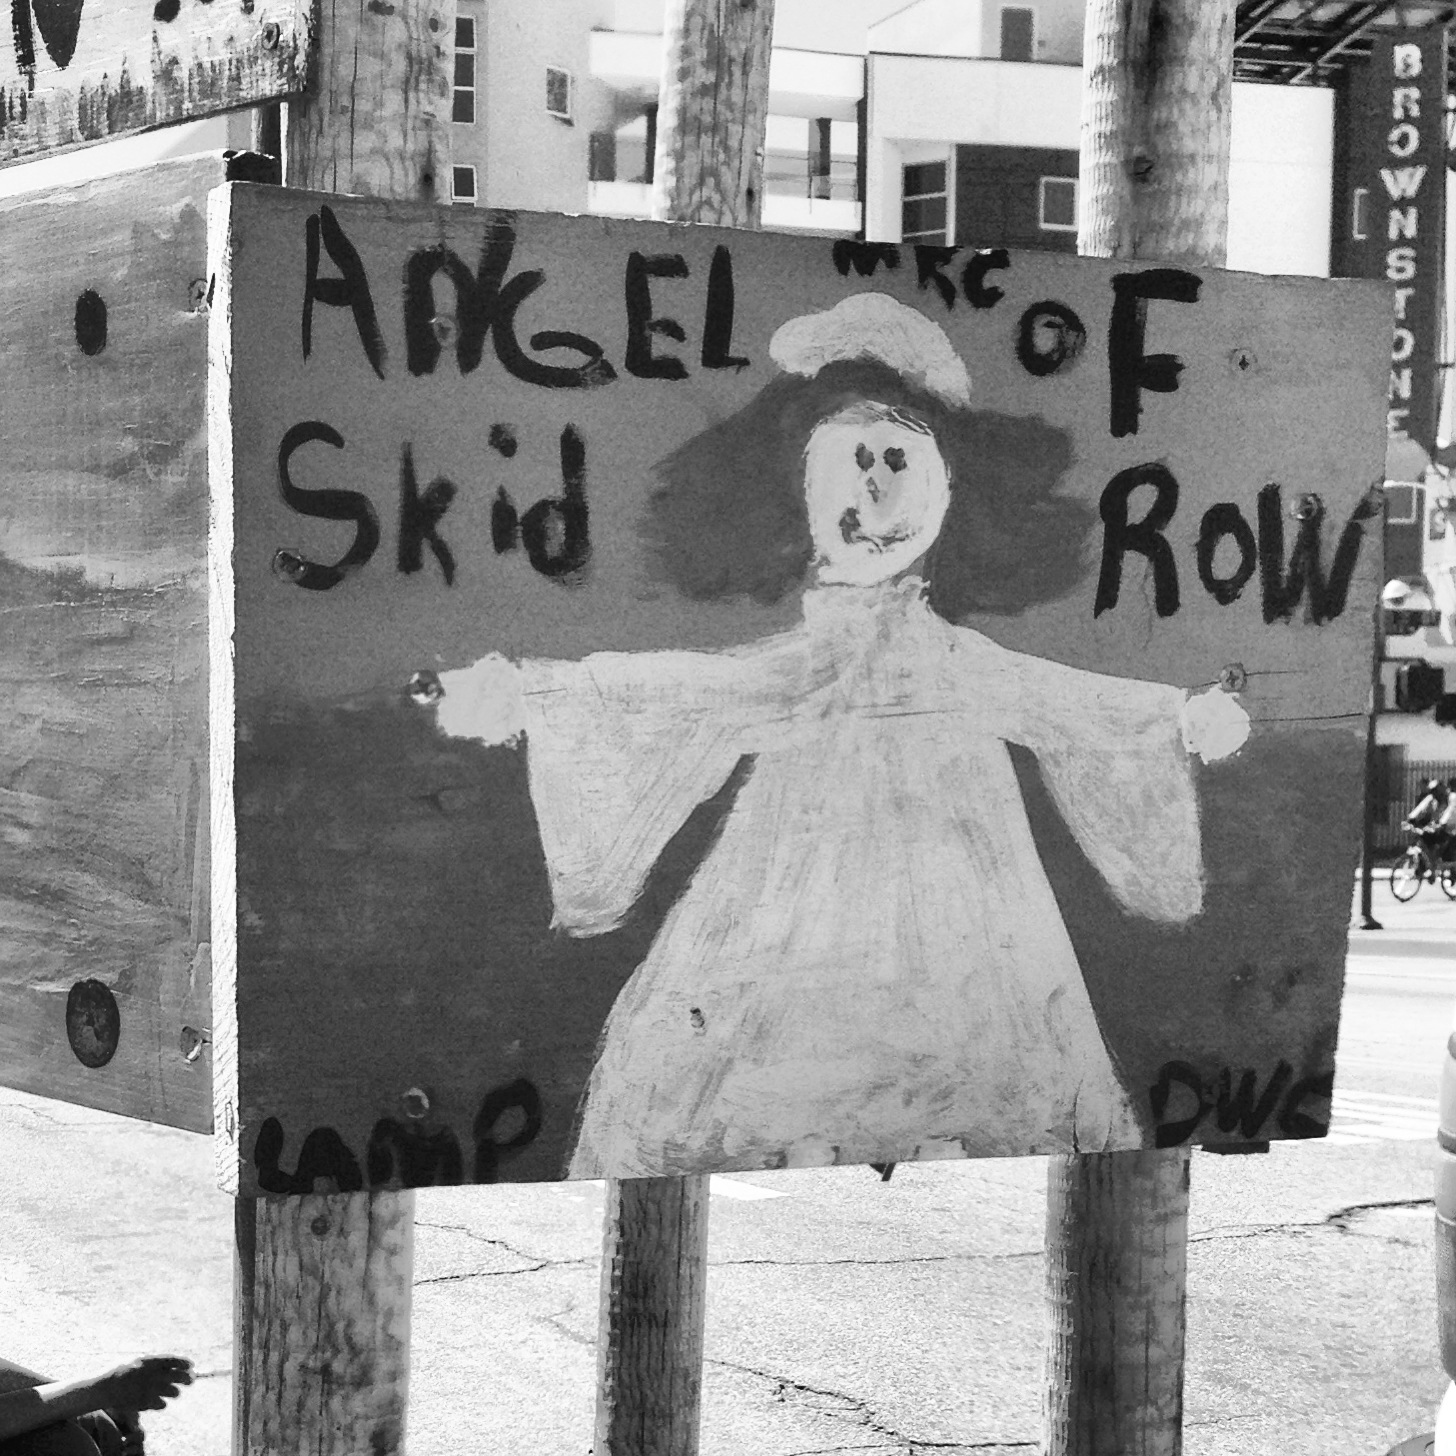 Angel of Skid Row